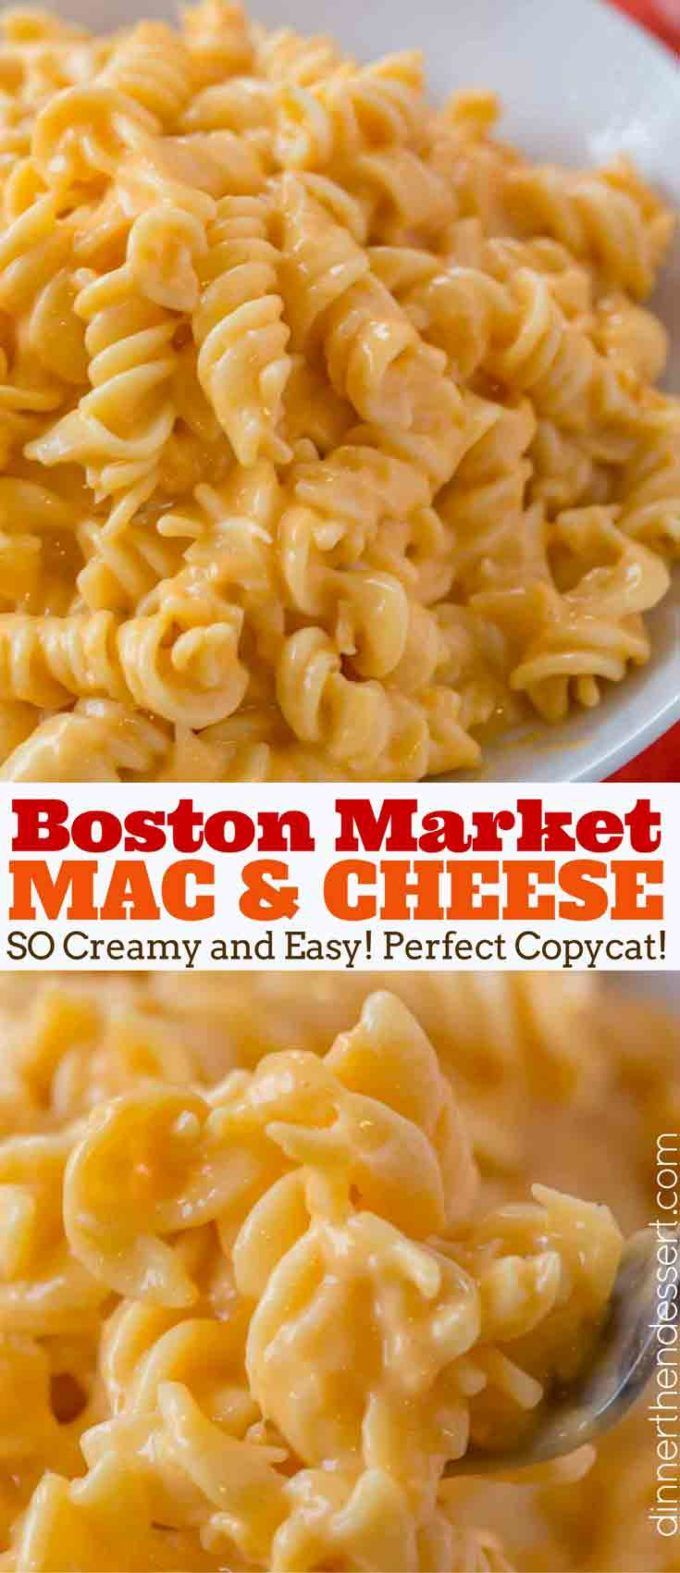 Boston Market Mac and Cheese, made with three cheeses is